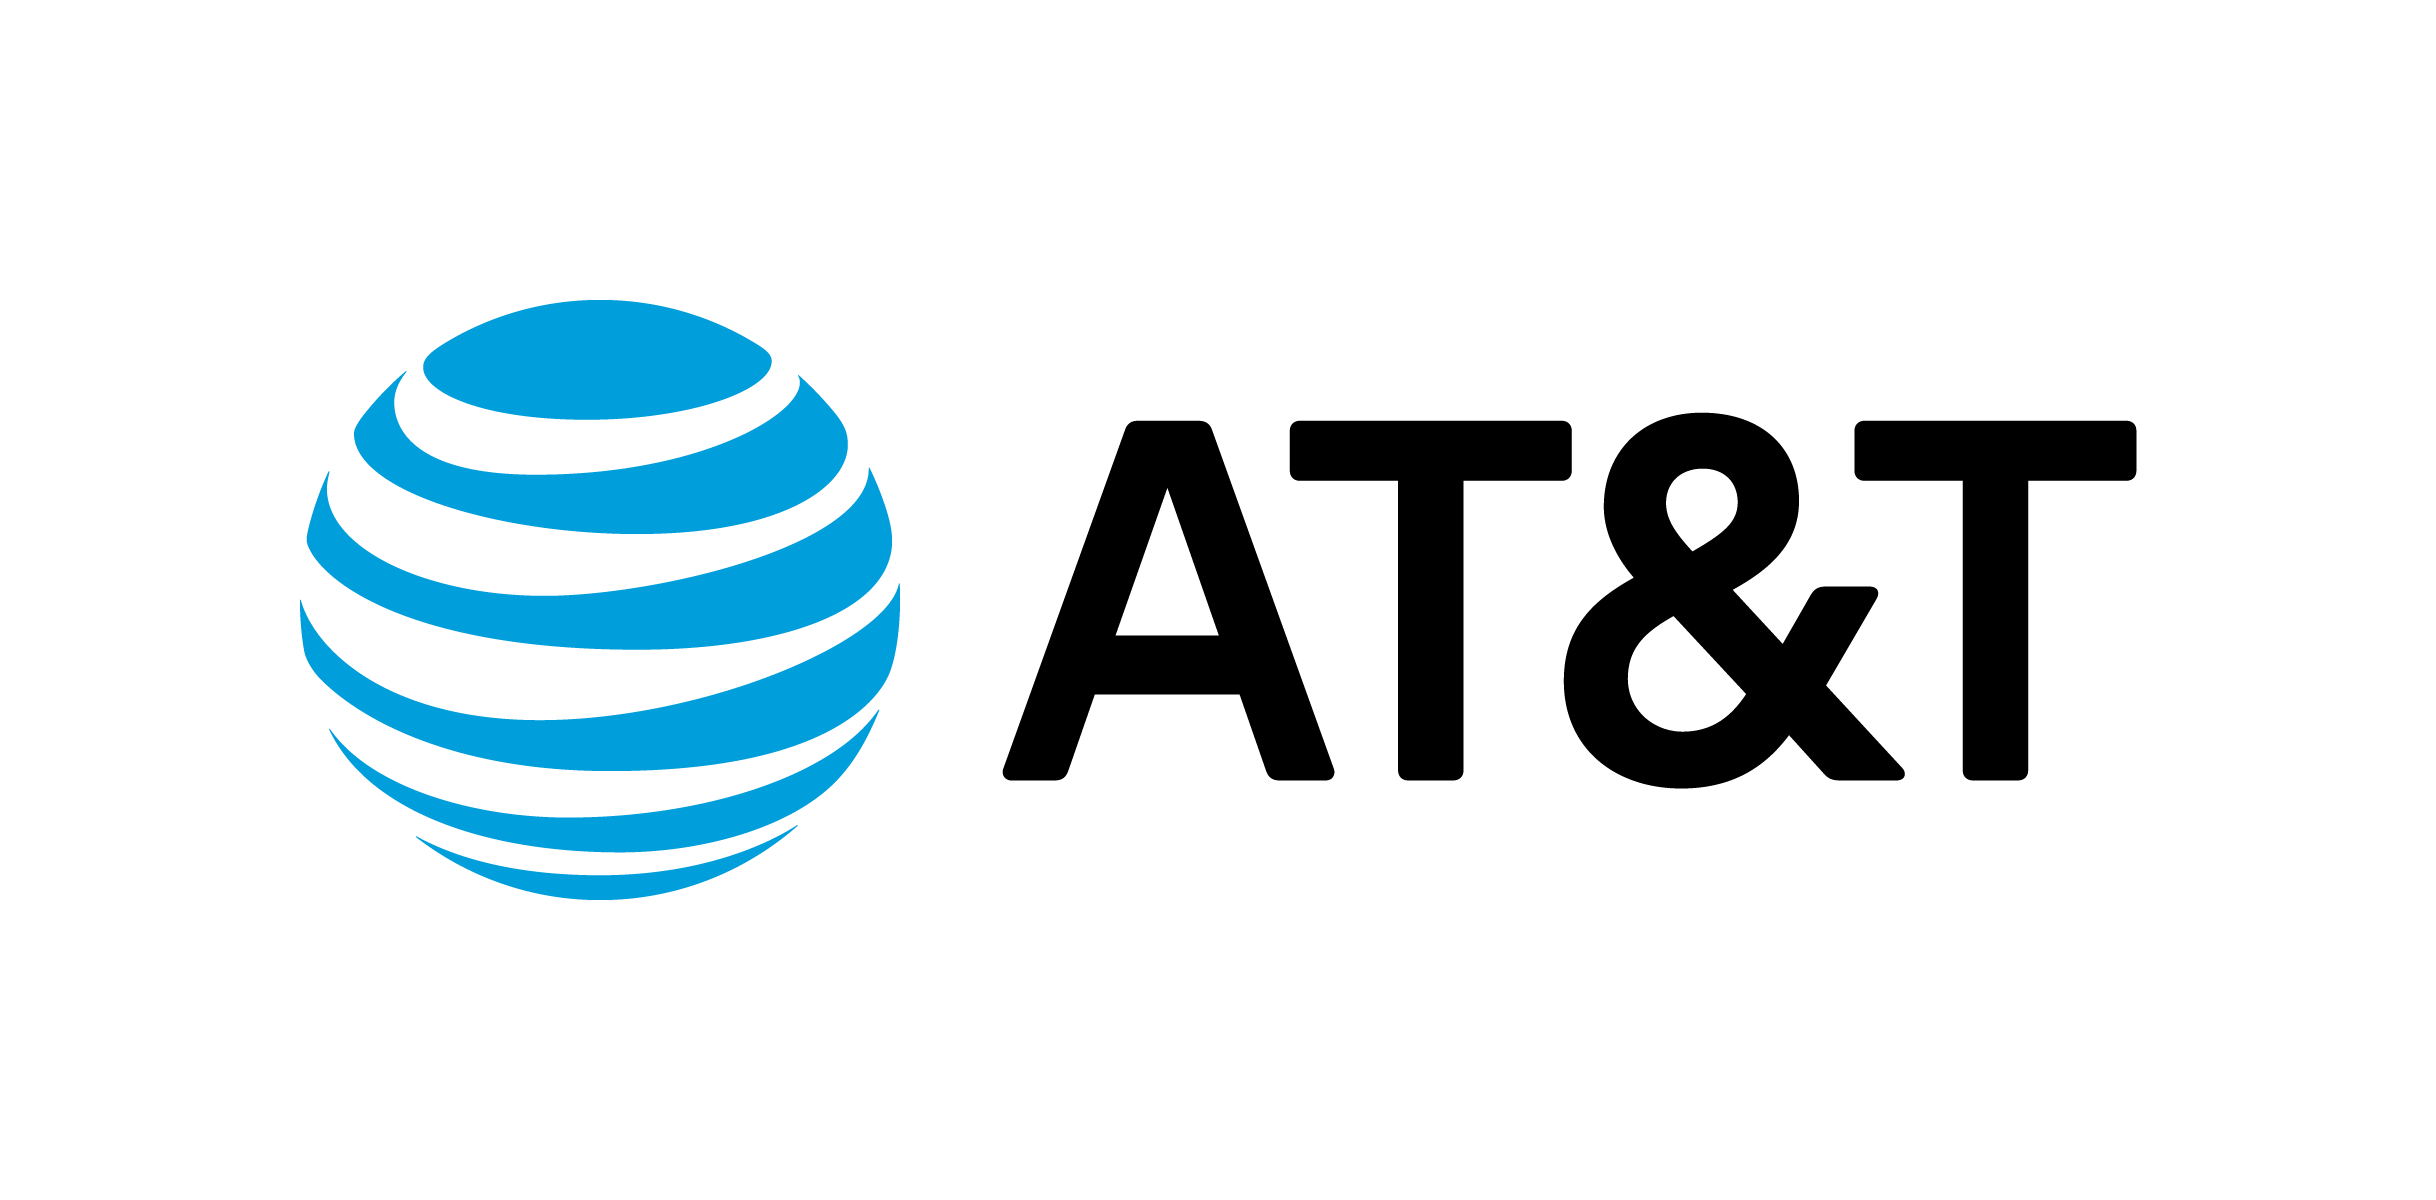 AT&T Authorized Dealer (Spring Mobile) logo